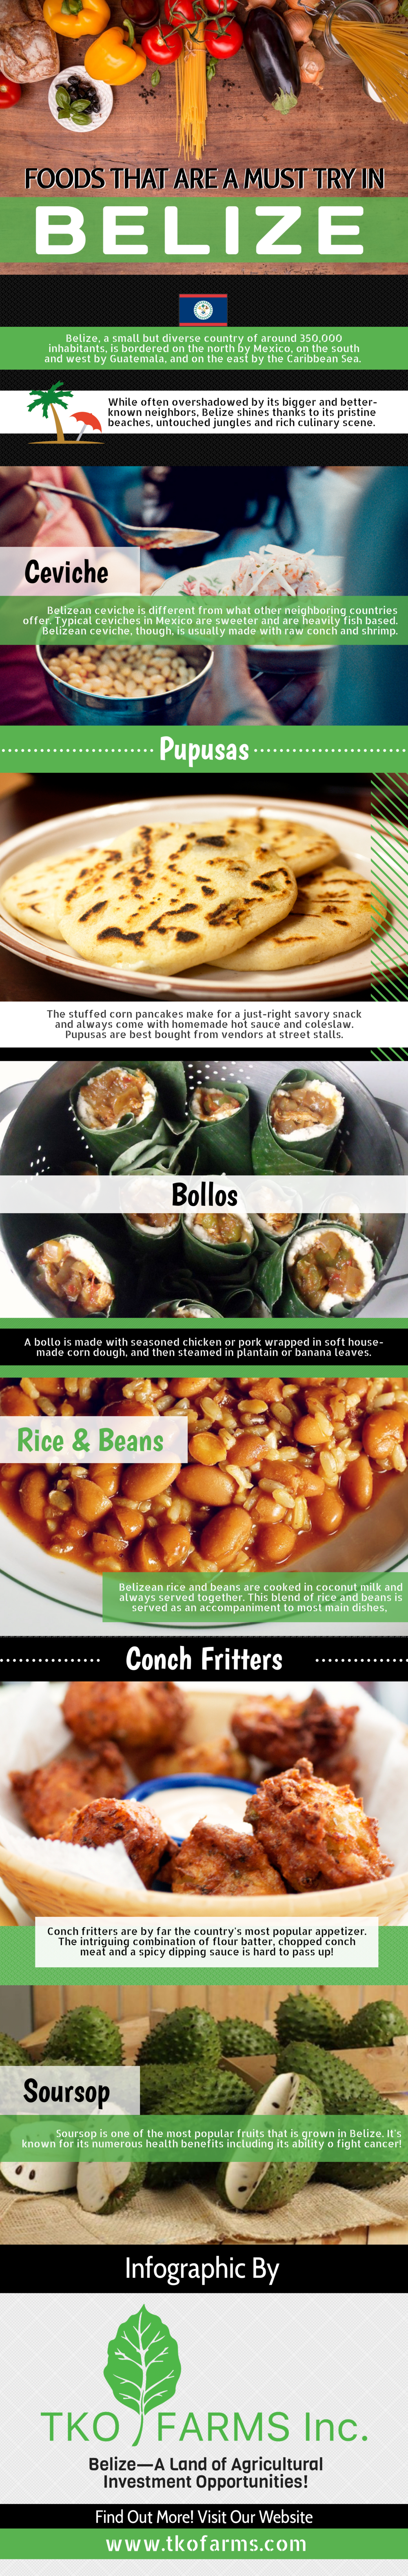 Belize Foods You Must Try